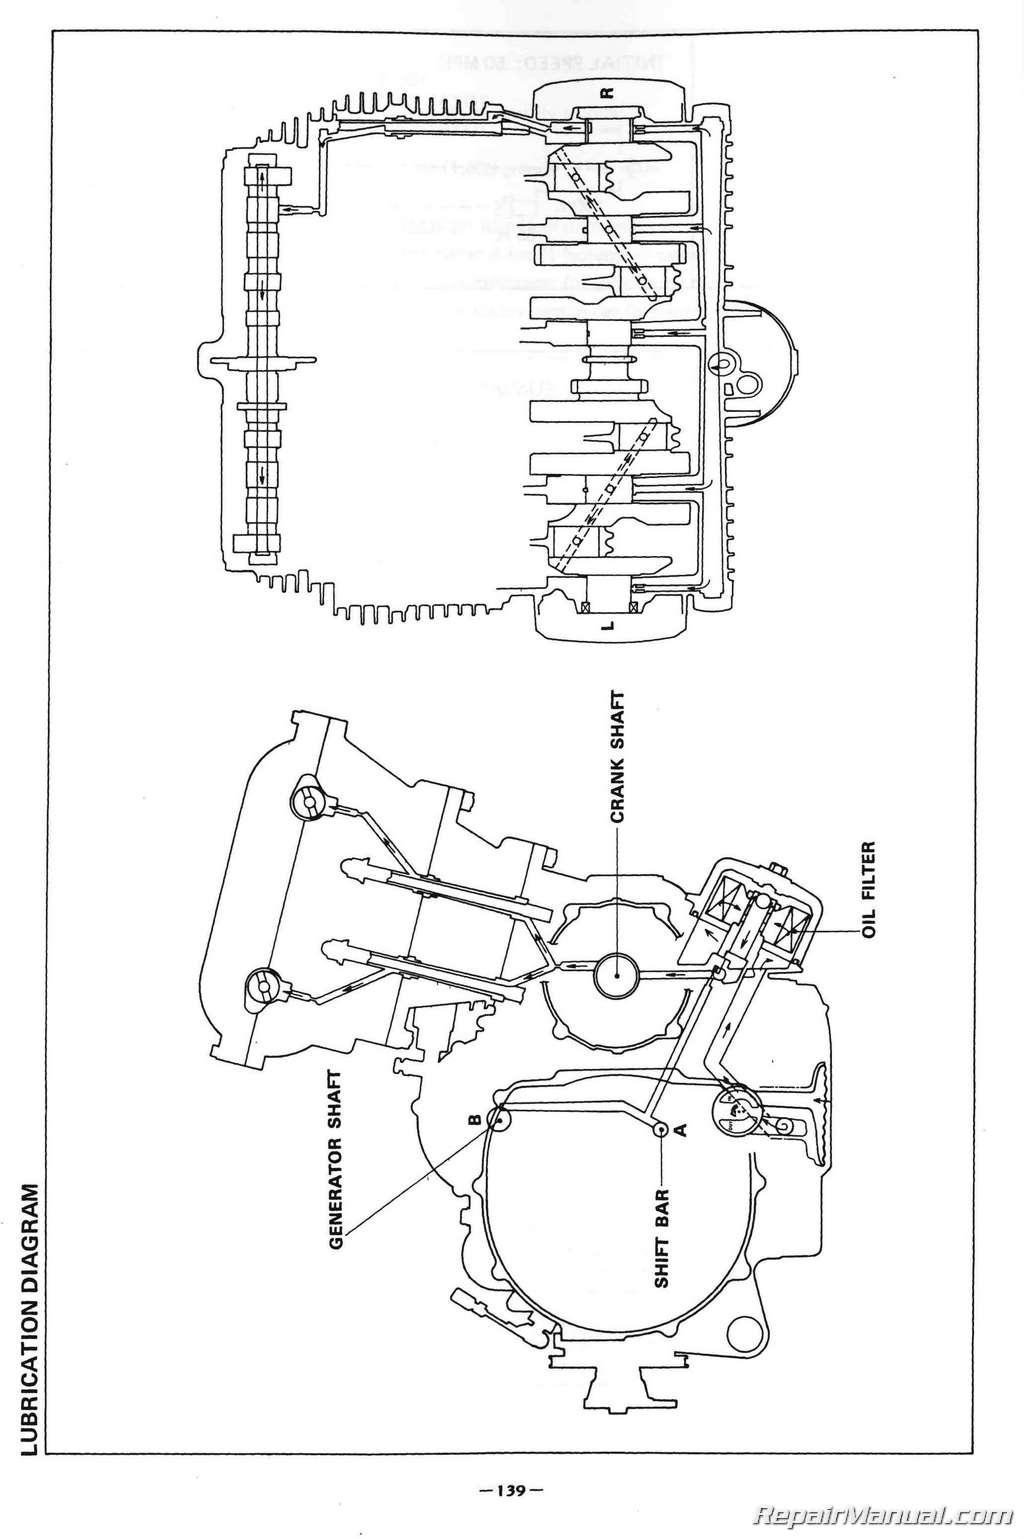 1980 – 1983 Yamaha XJ650 Maxim Motorcycle Service Manual Yamaha Xj Maxim Wiring Diagram on